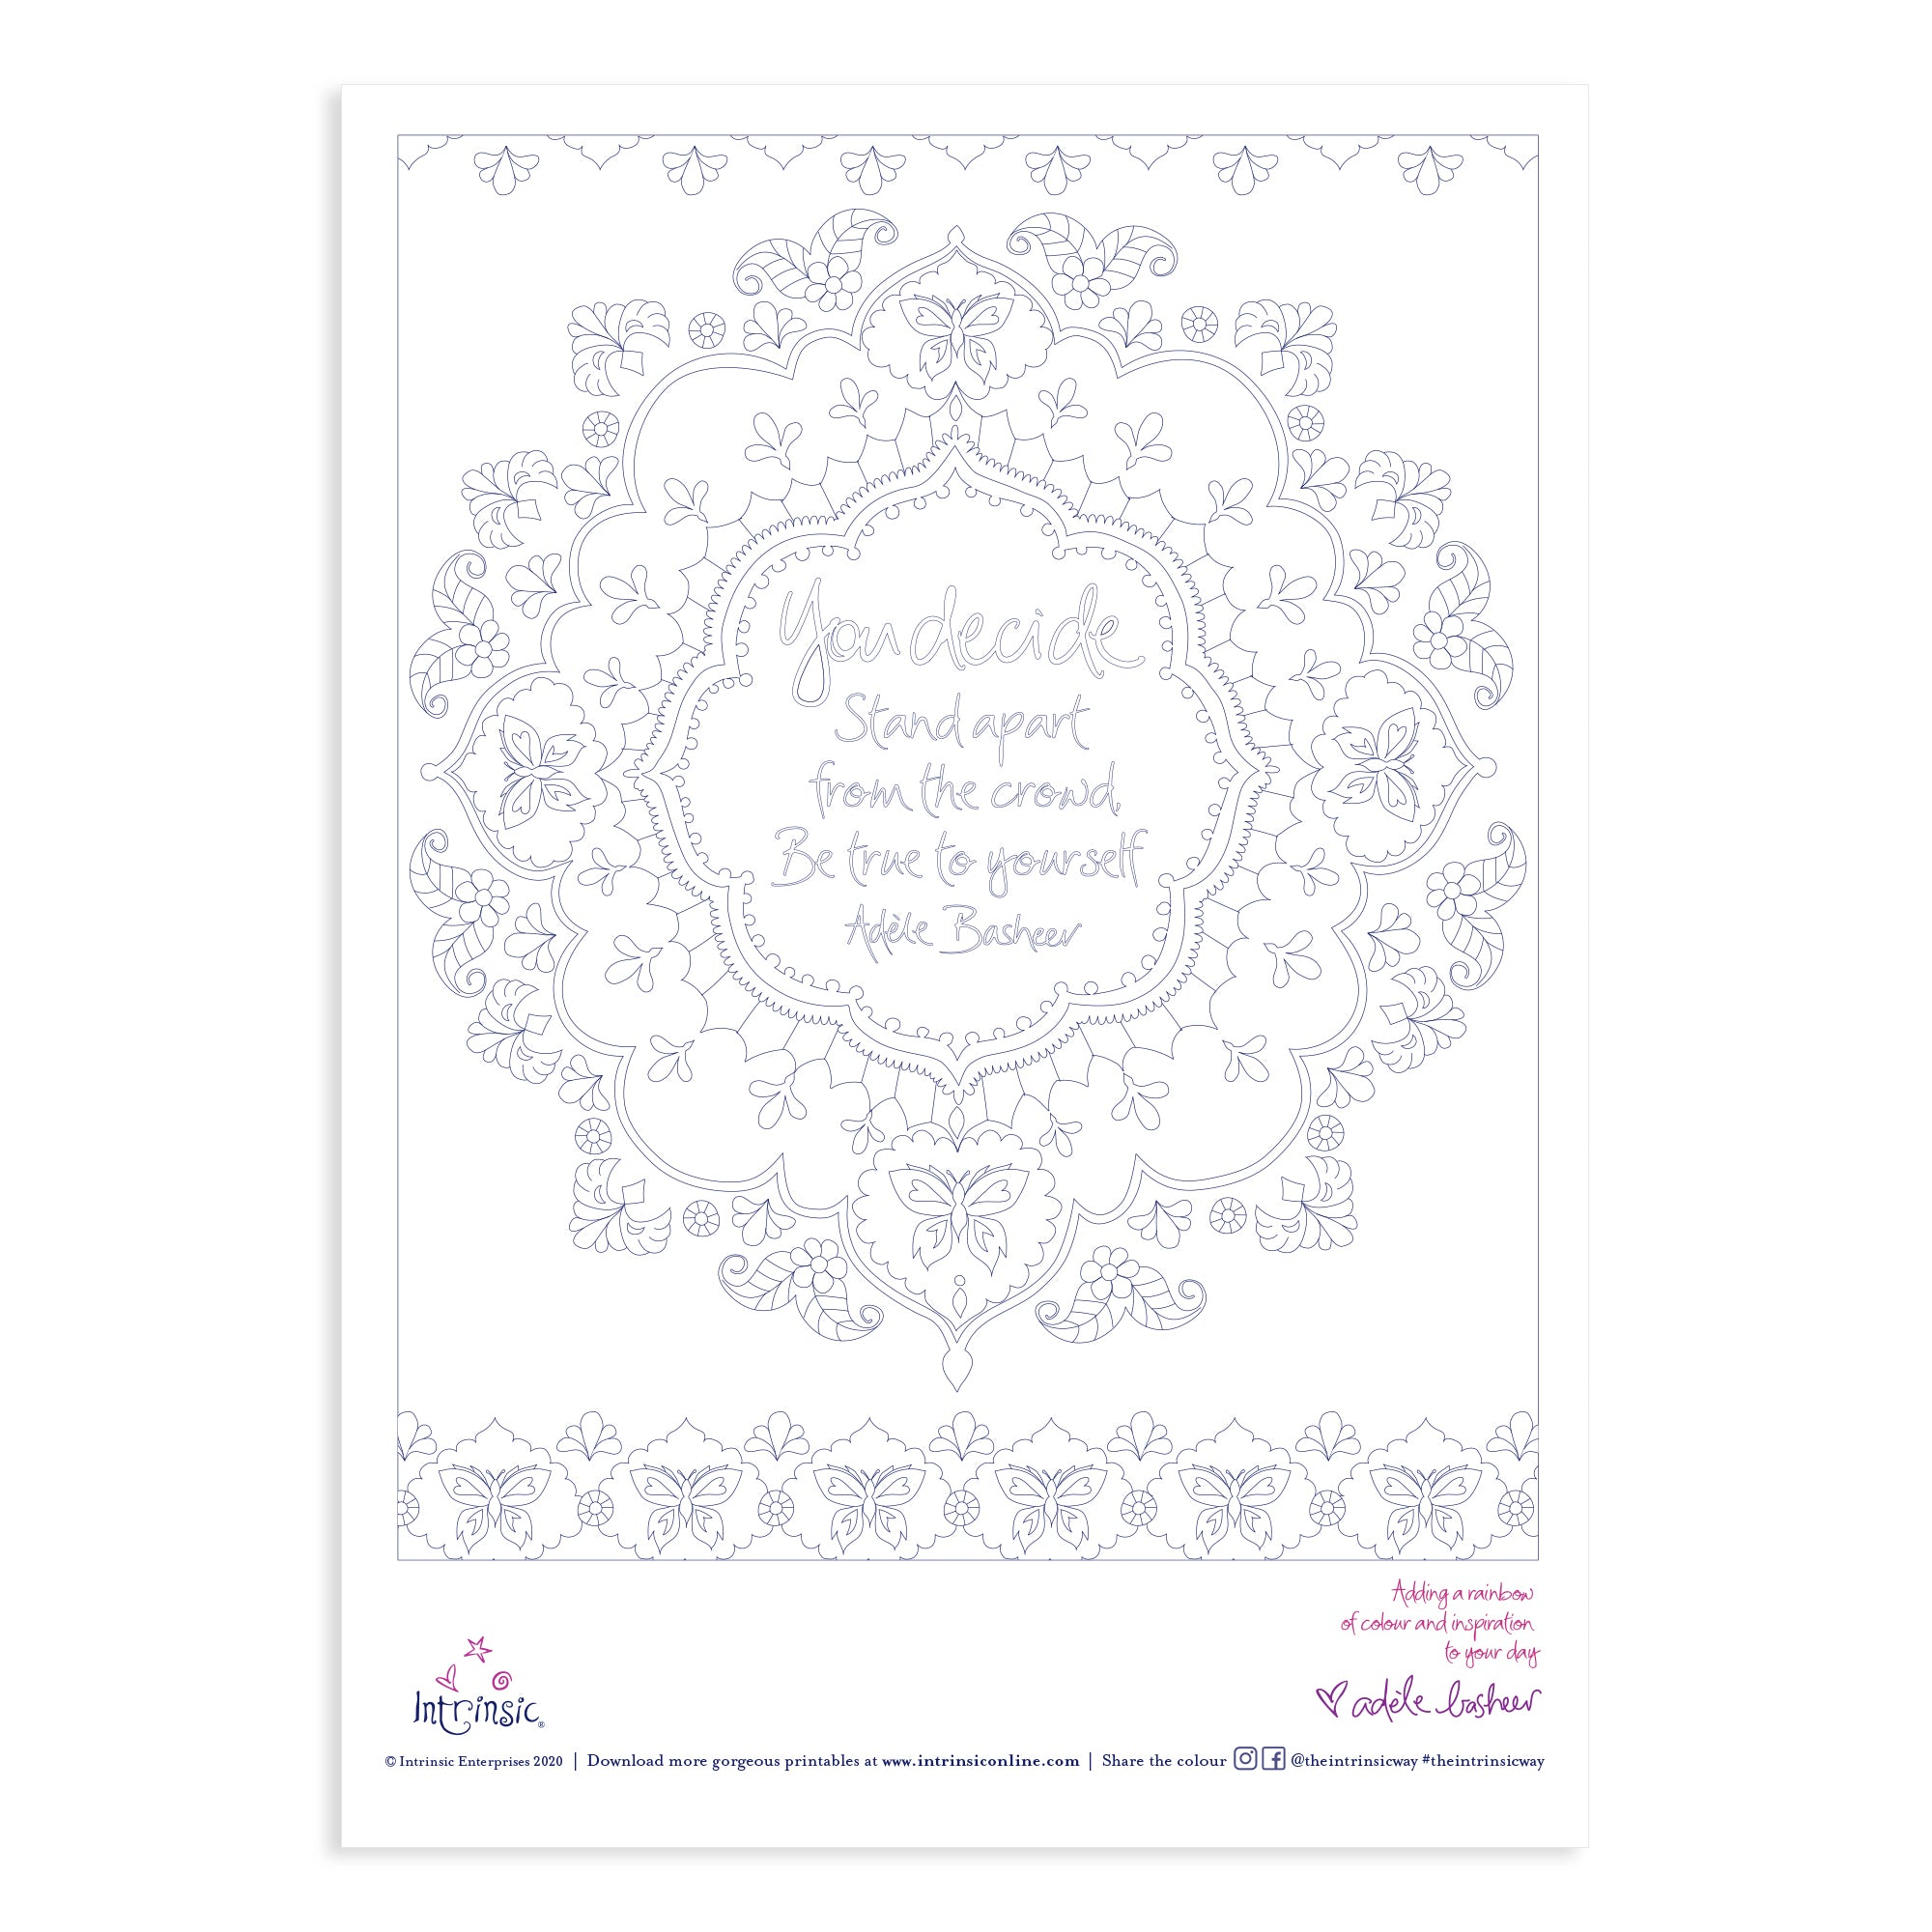 Download Intrinsic's You Decide Colouring In Printable #25